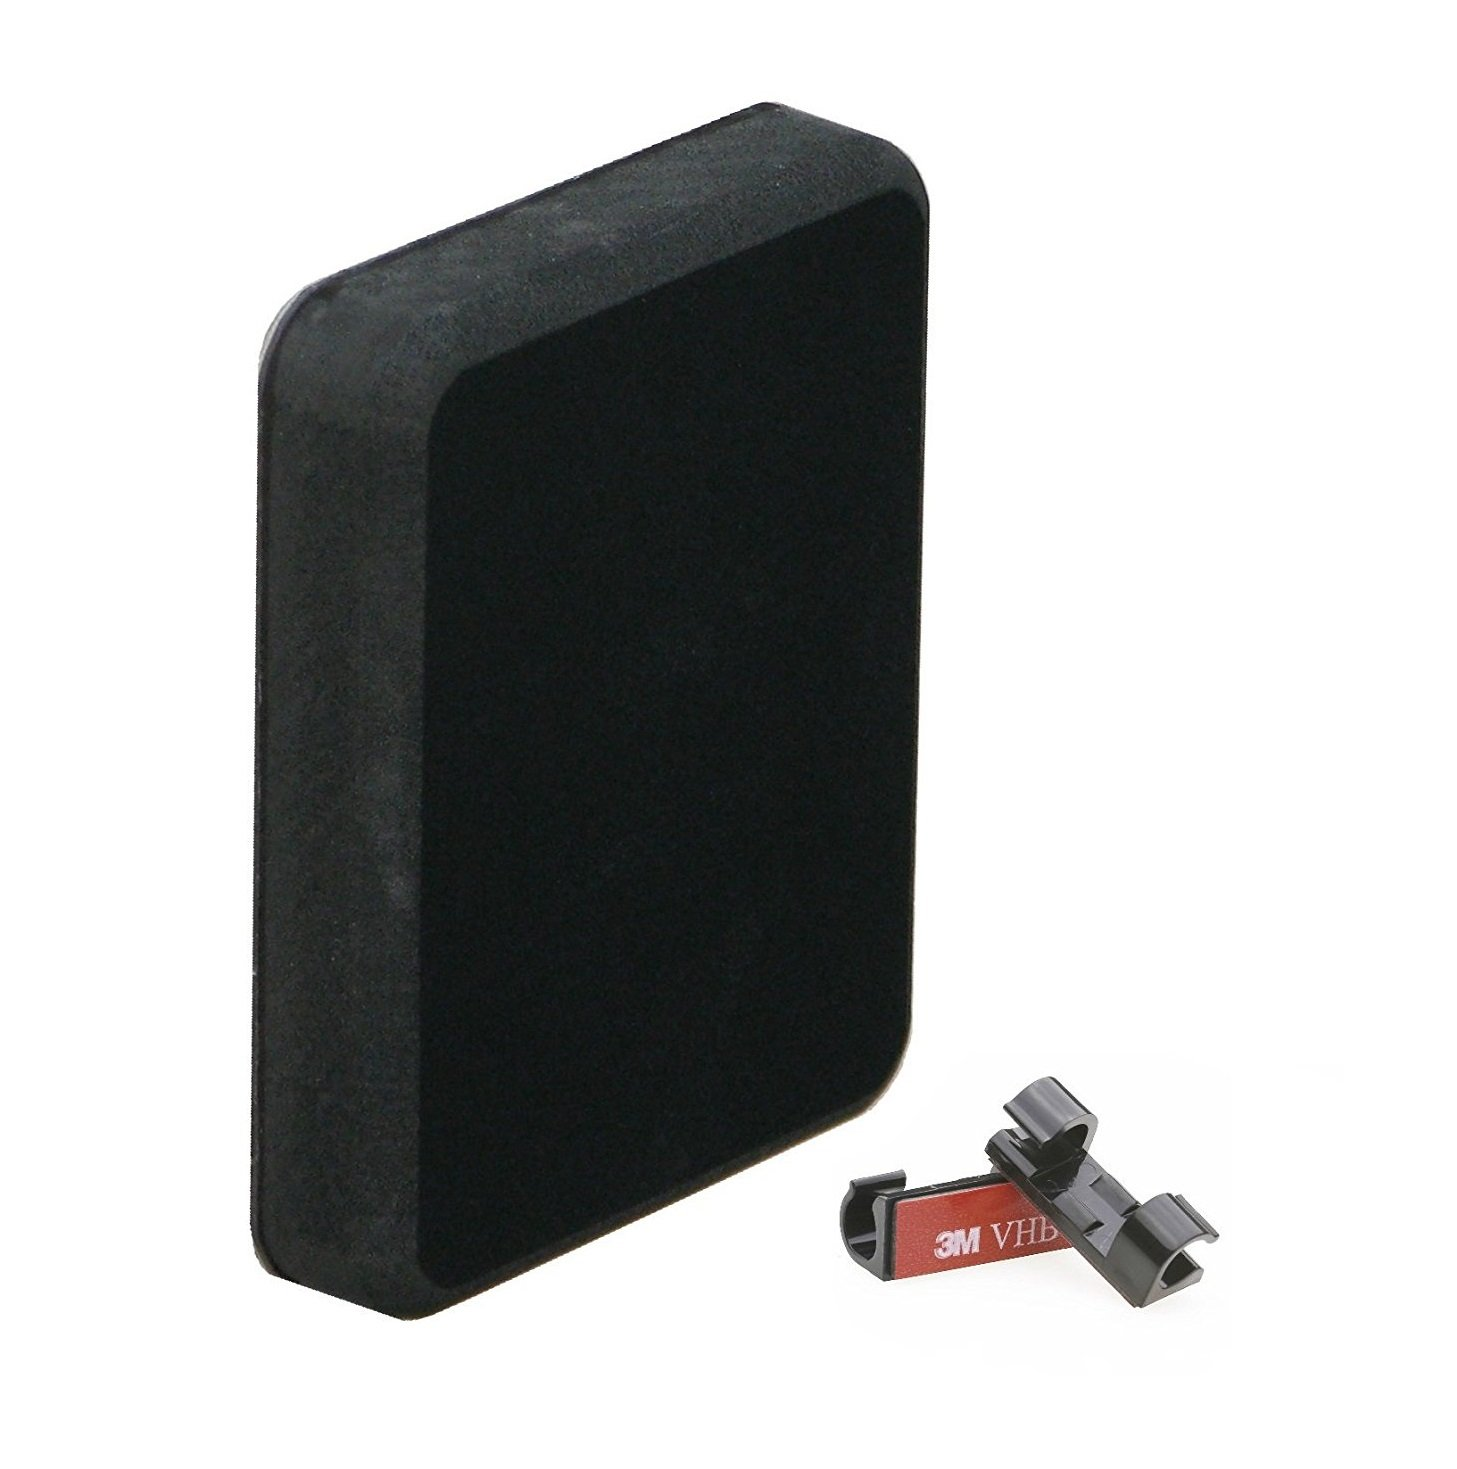 Stern Pad Jumbo Black - Screwless Transducer/Acc. Mounting Kit (for Large 3D Scan Transducers)